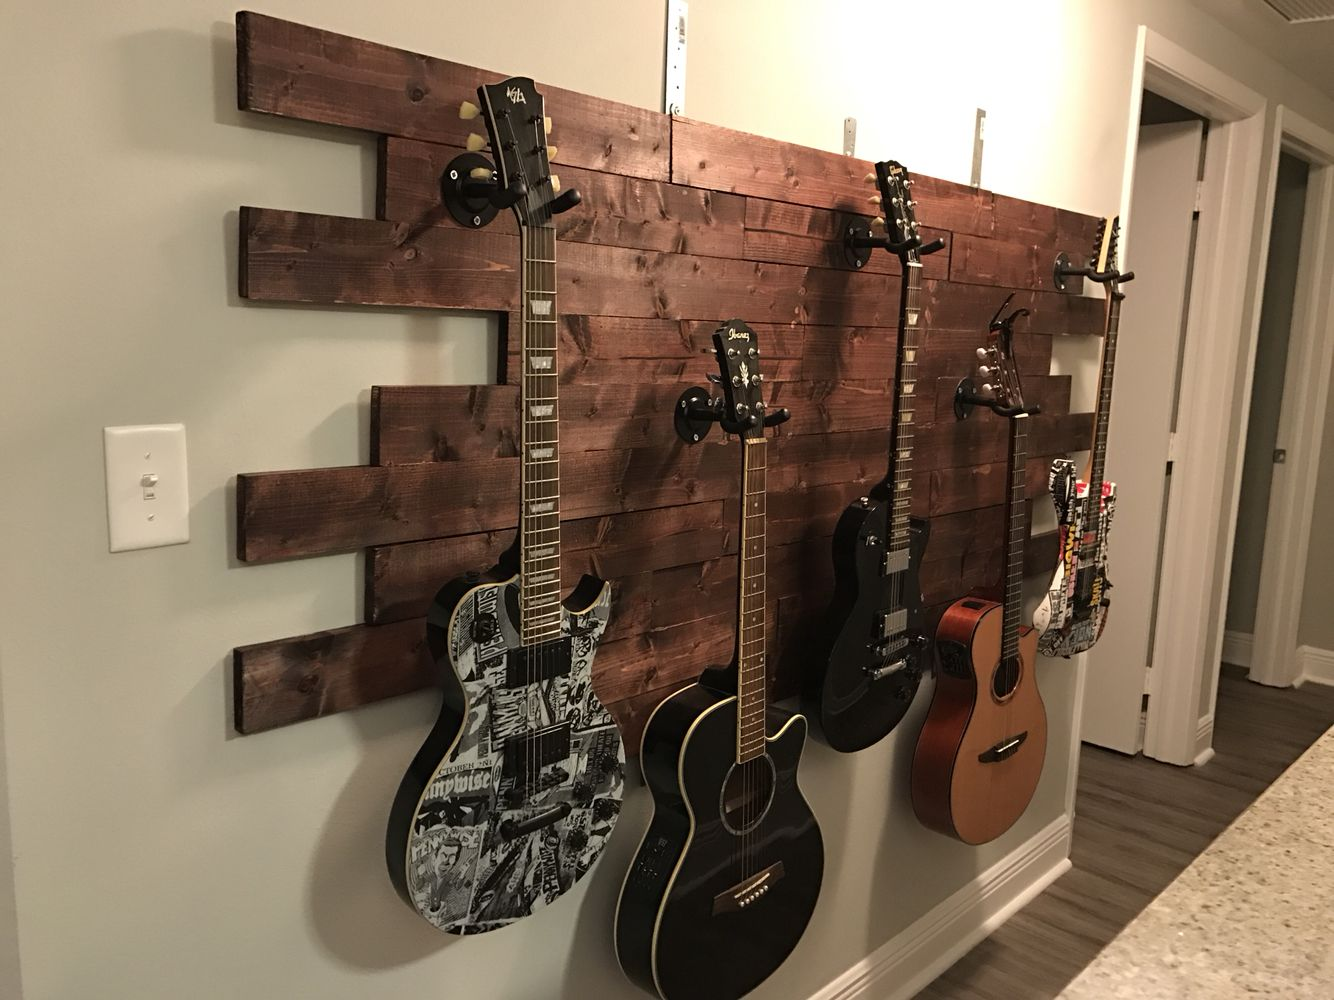 pin by luisa cotto on my projects in 2018 pinterest guitar room guitar wall and guitar. Black Bedroom Furniture Sets. Home Design Ideas